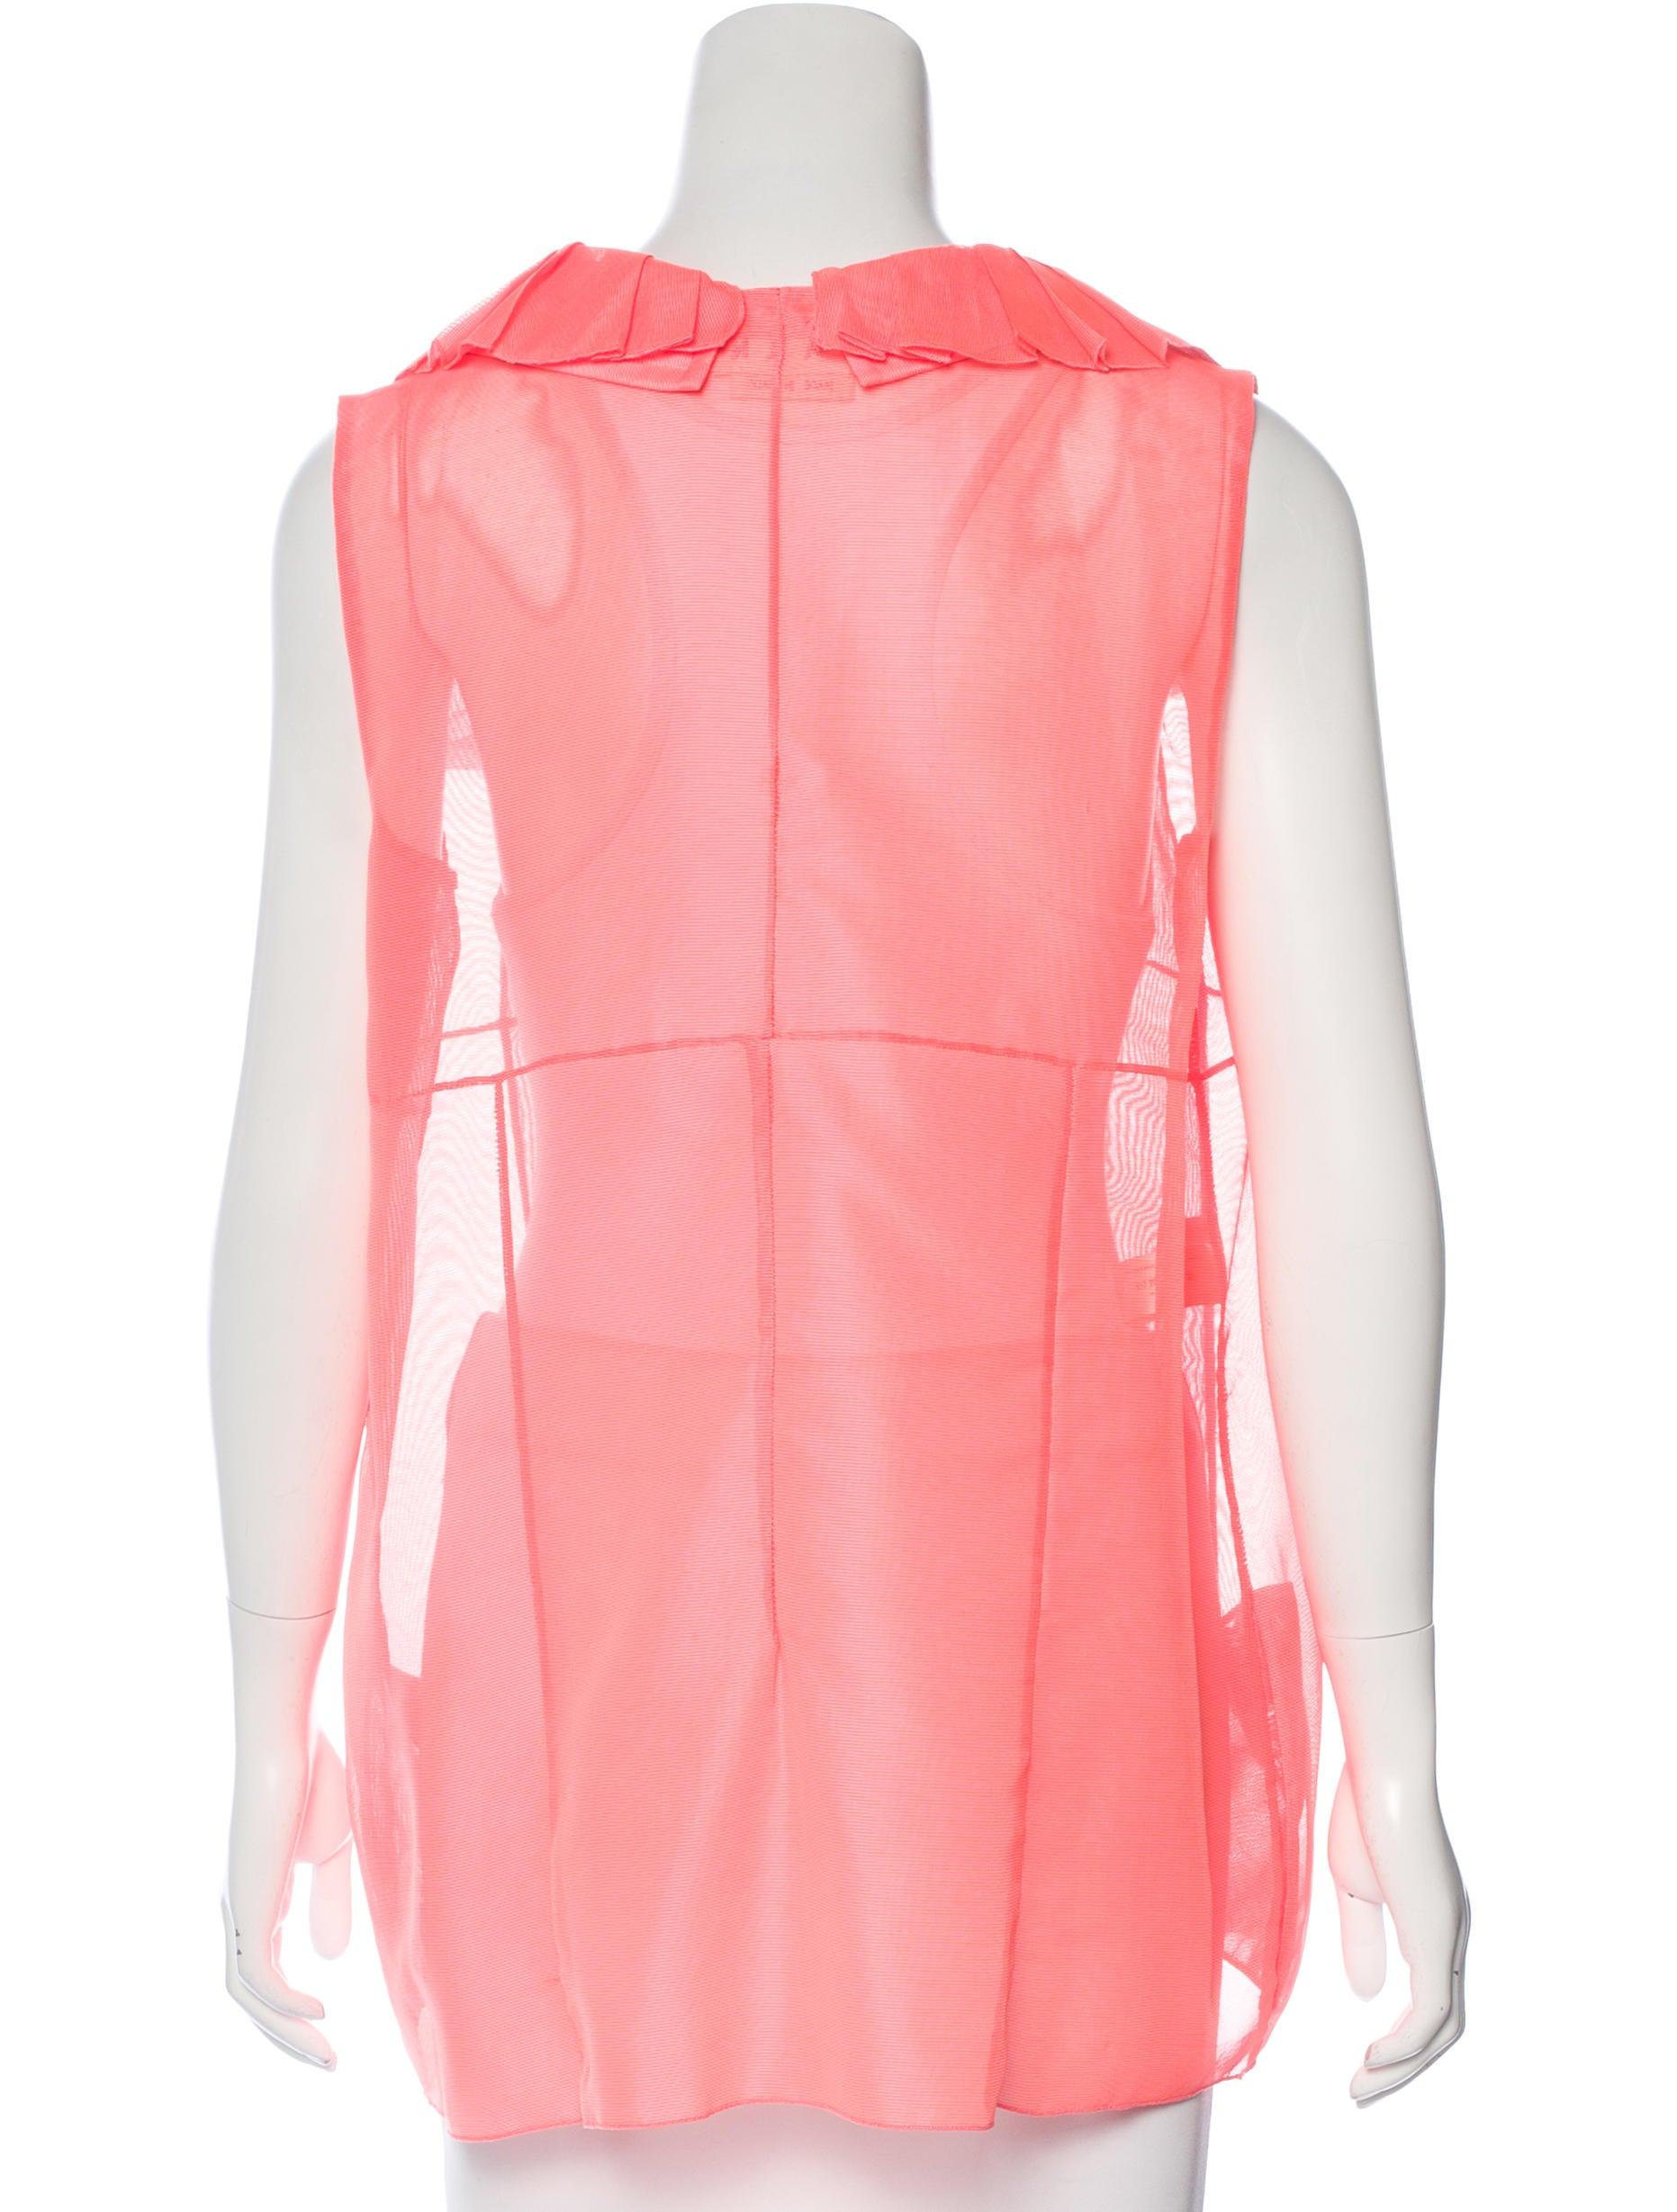 Stand Collar Blouse Designs Images : Marni stand collar tulle blouse clothing man